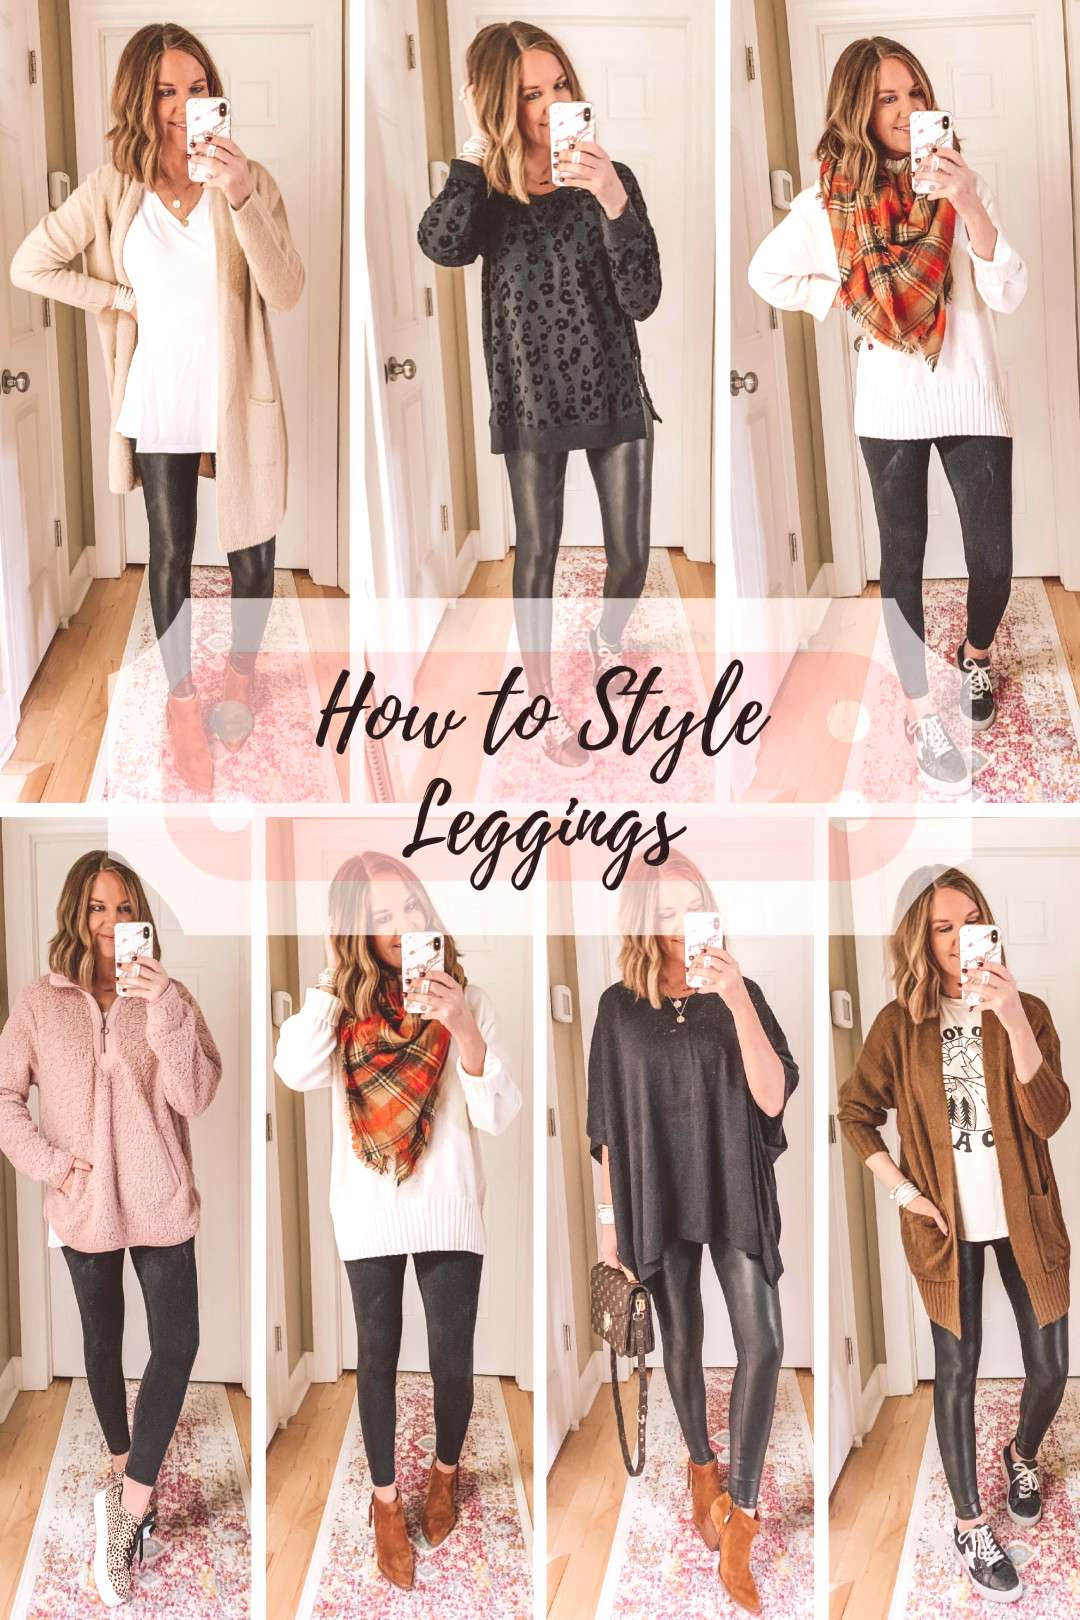 Leggings Outfits Inspiration for Fall and Winter - Wishes amp Reality How to Style Leggings